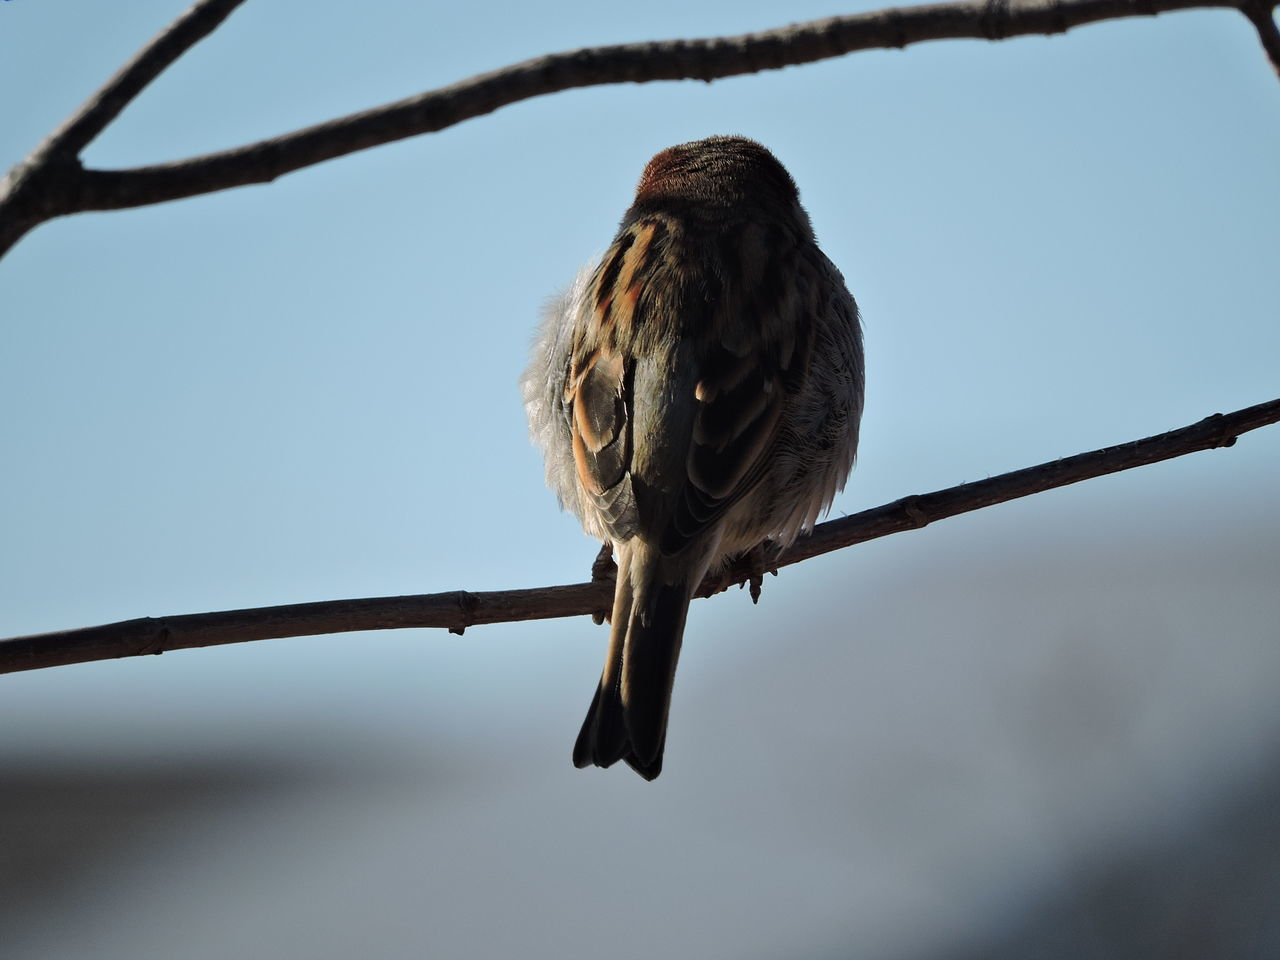 sparrow in the sun Animal Themes Animal Wildlife Animals In The Wild Beak Bird Branch Clear Sky Close-up Day No People One Animal Outdoors Perching Sunlit Tree